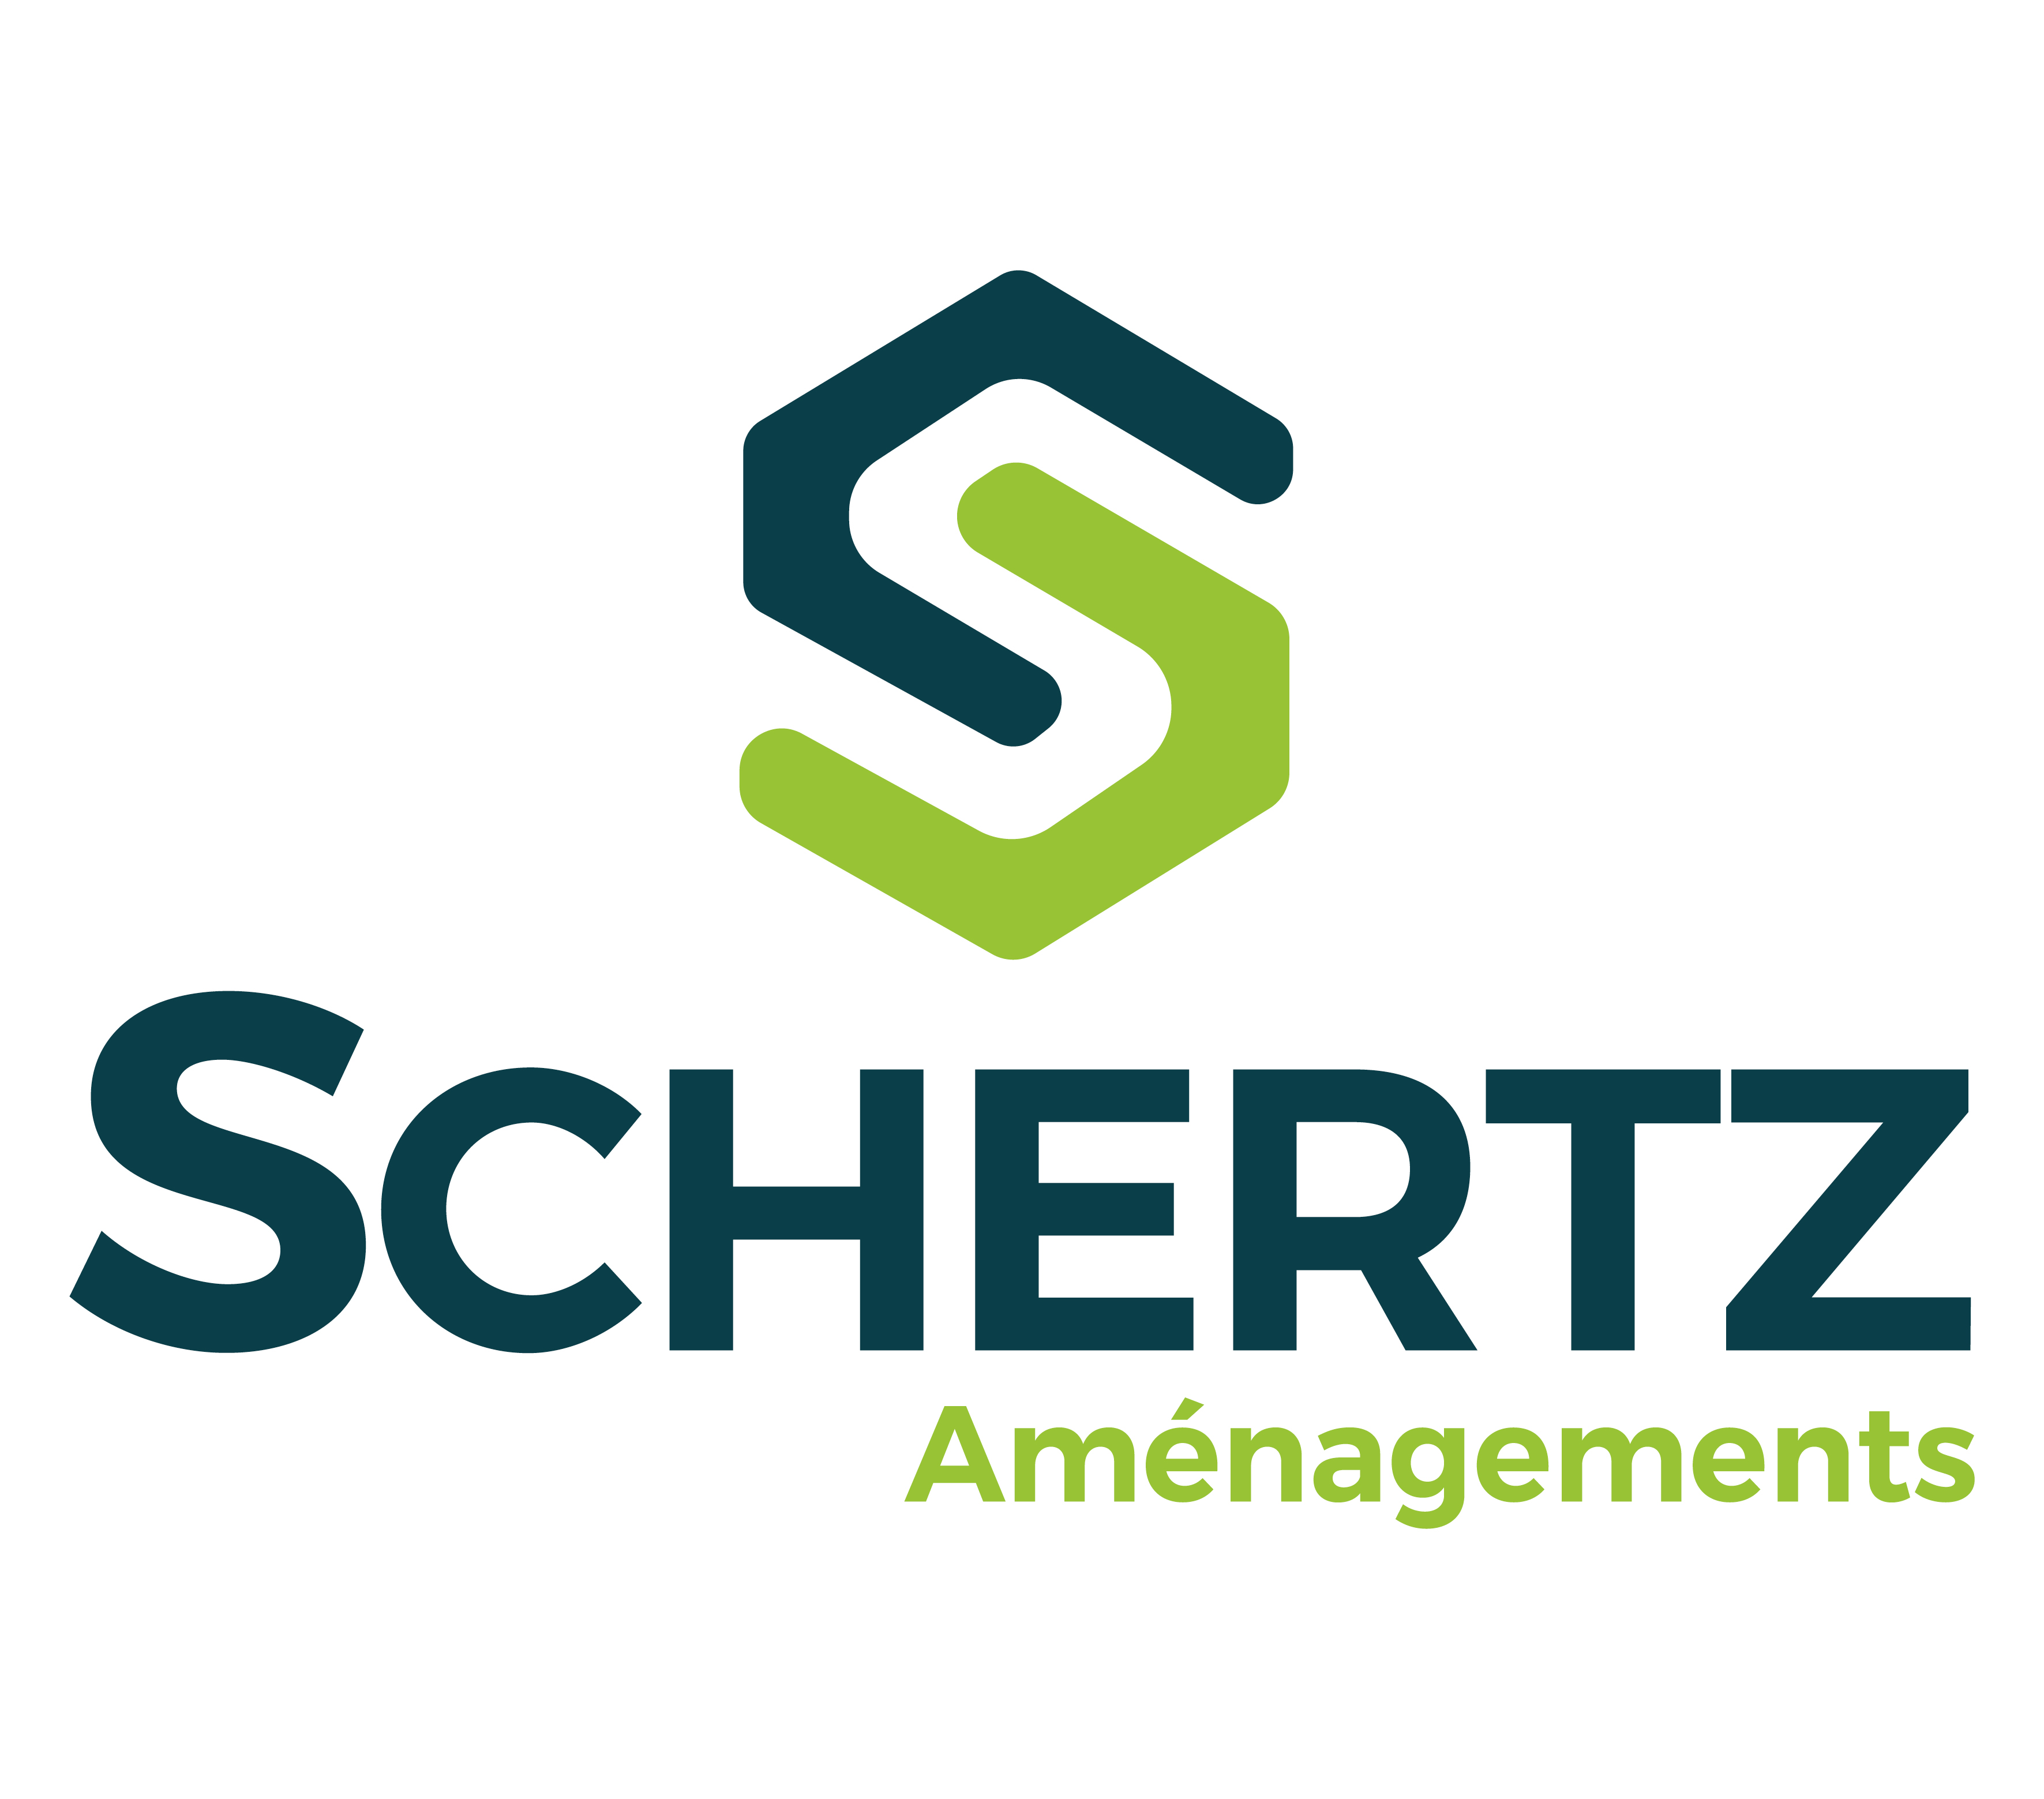 Schertz Amenagements